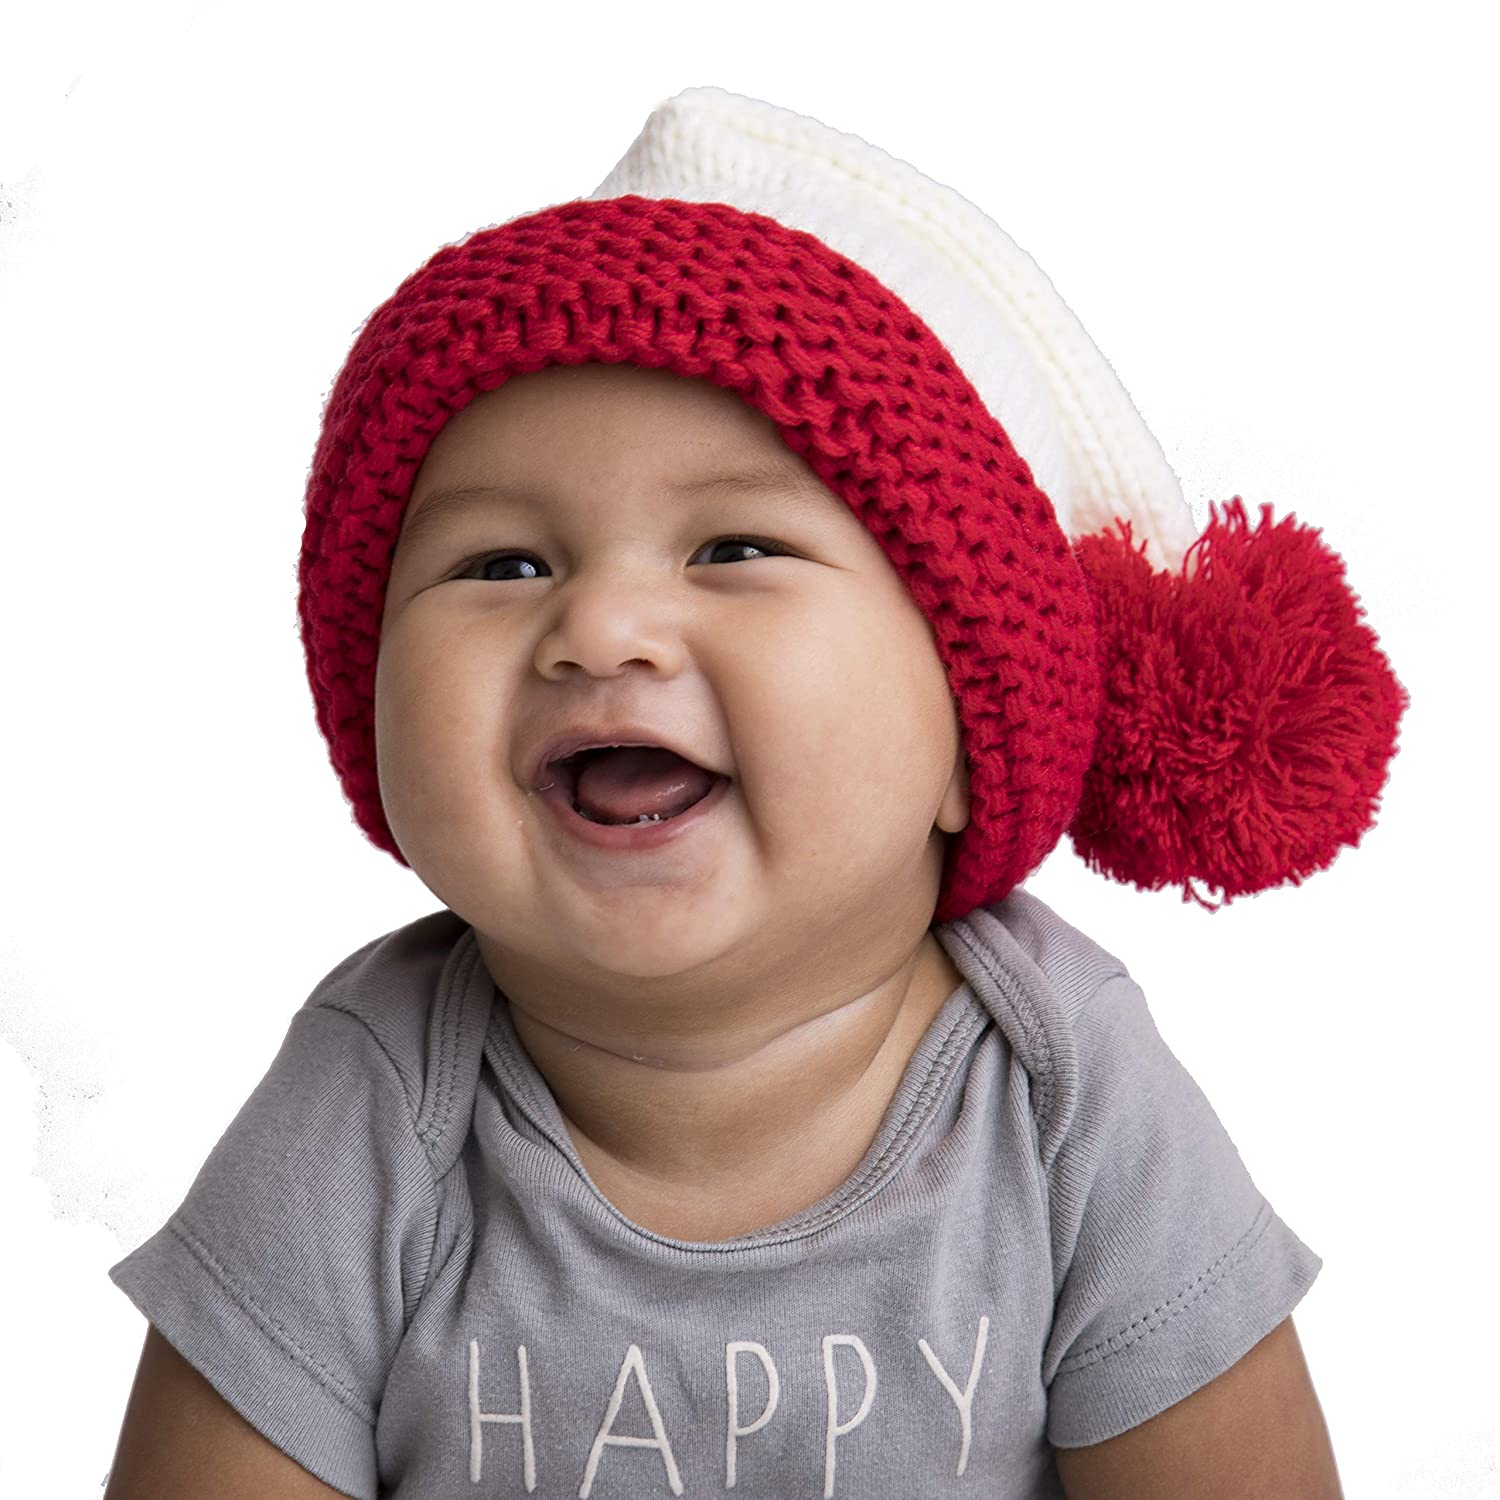 cedcd56e7f9 Amazon.com  Huggalugs Baby Toddler Adult Santa Stocking Hat in 2 Color  Choices  Clothing